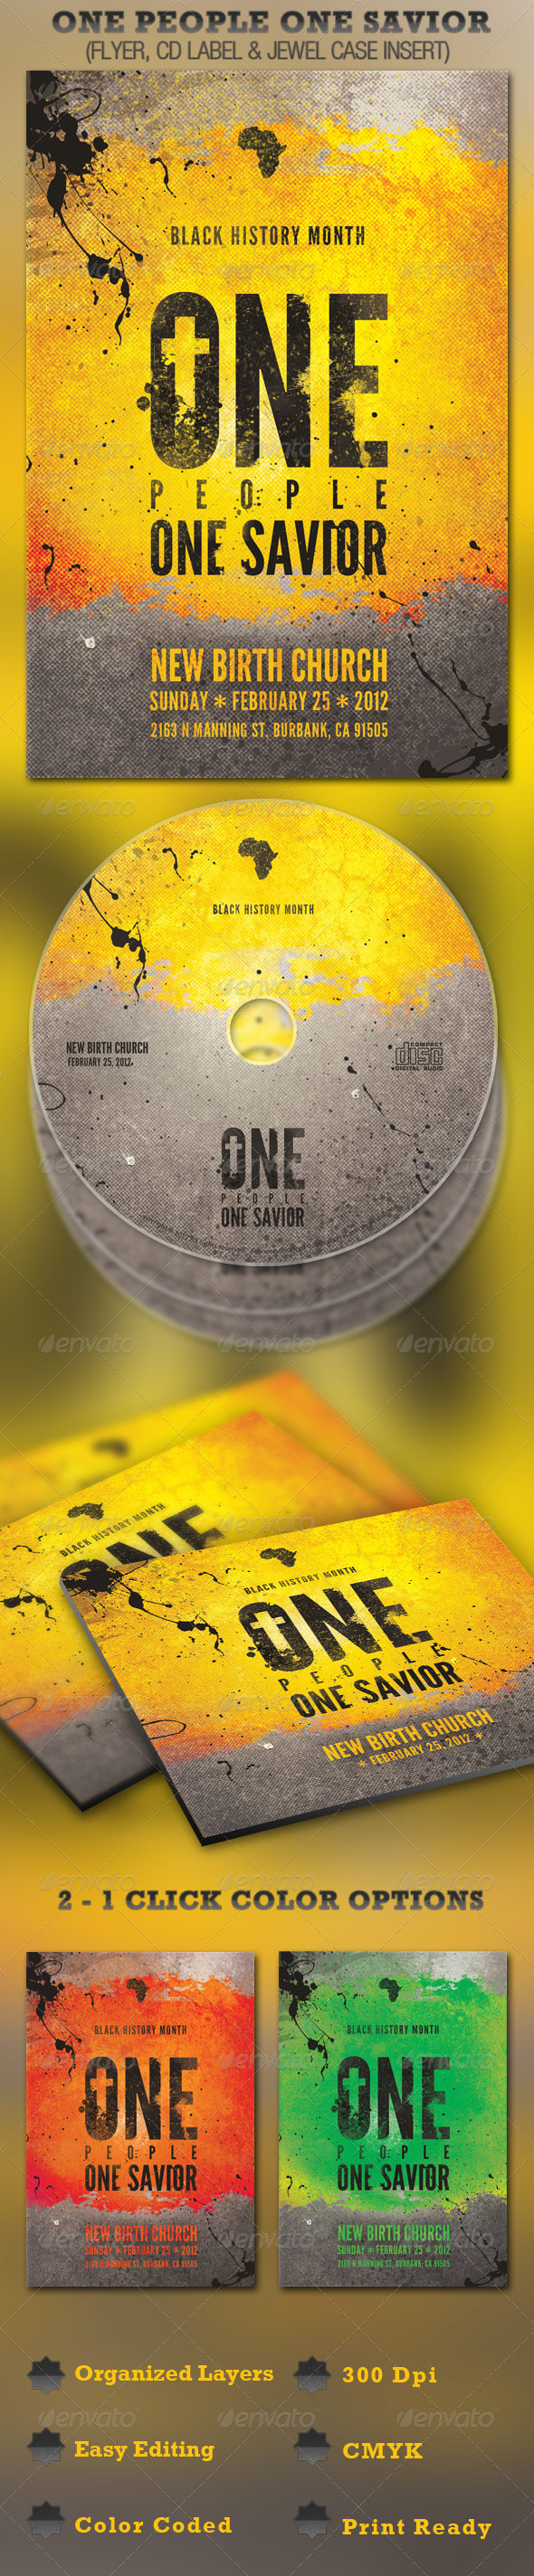 GraphicRiver One People One Savior Church Flyer and CD Template 1544980